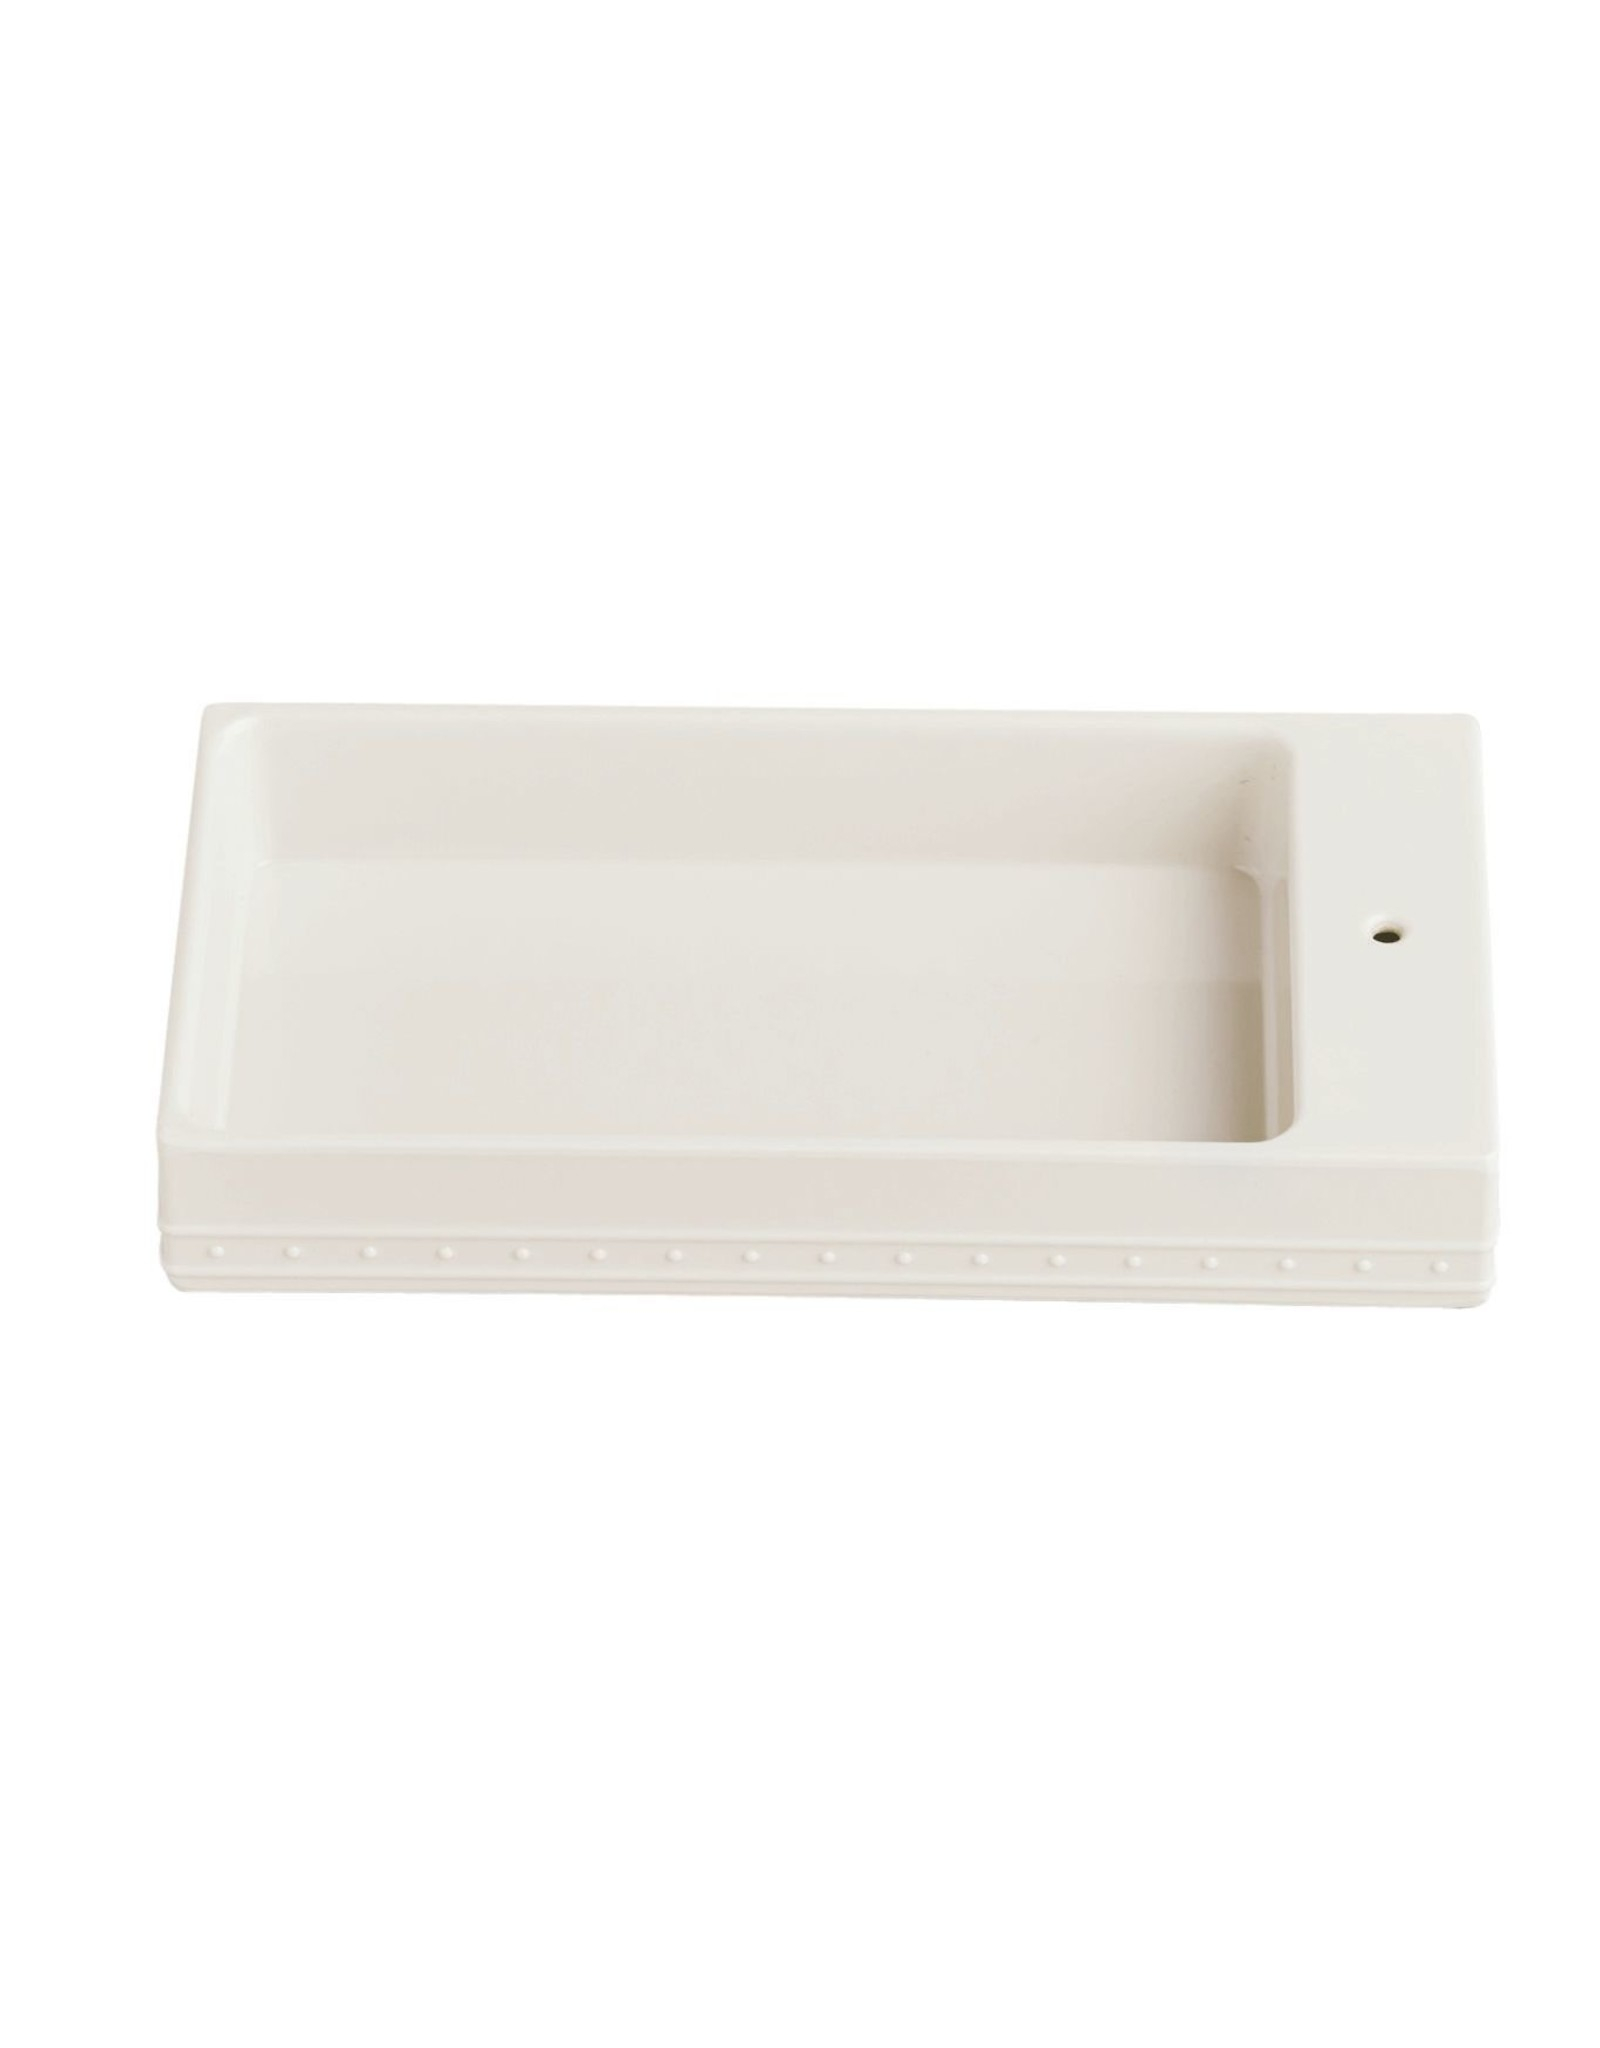 Nora Fleming Guest Towel Holder Melamine